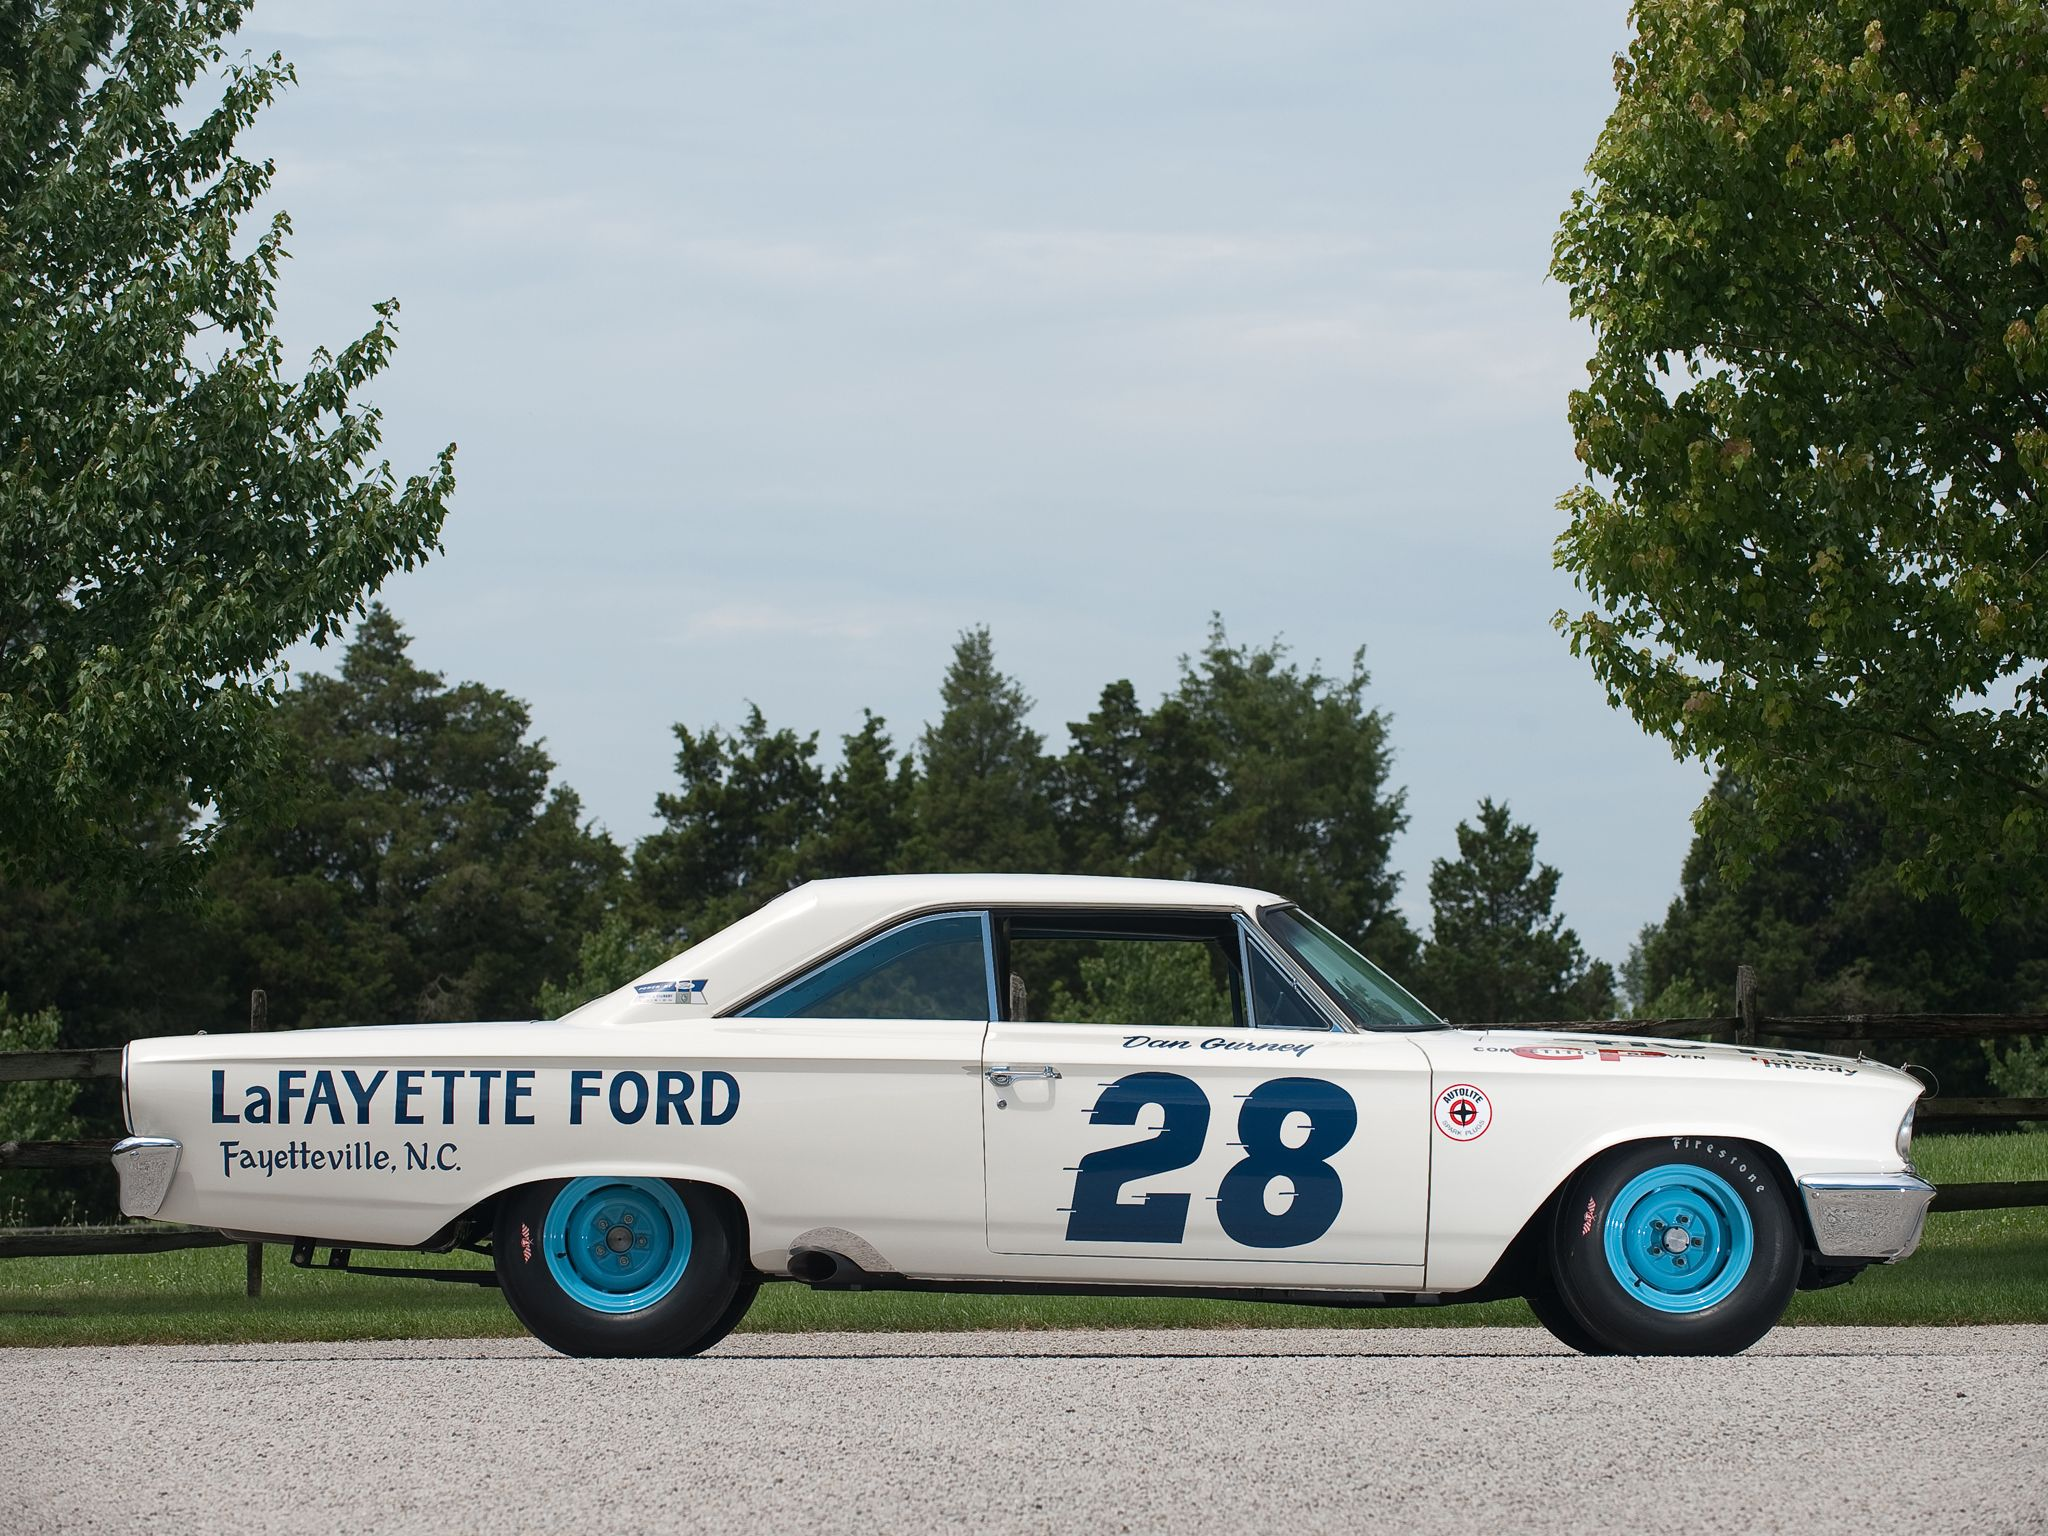 1963 ford galaxie 500 427 - 1963 Ford Galaxie 500 X L 427 Lightweight Nascar The Real Reason For The Mid Year